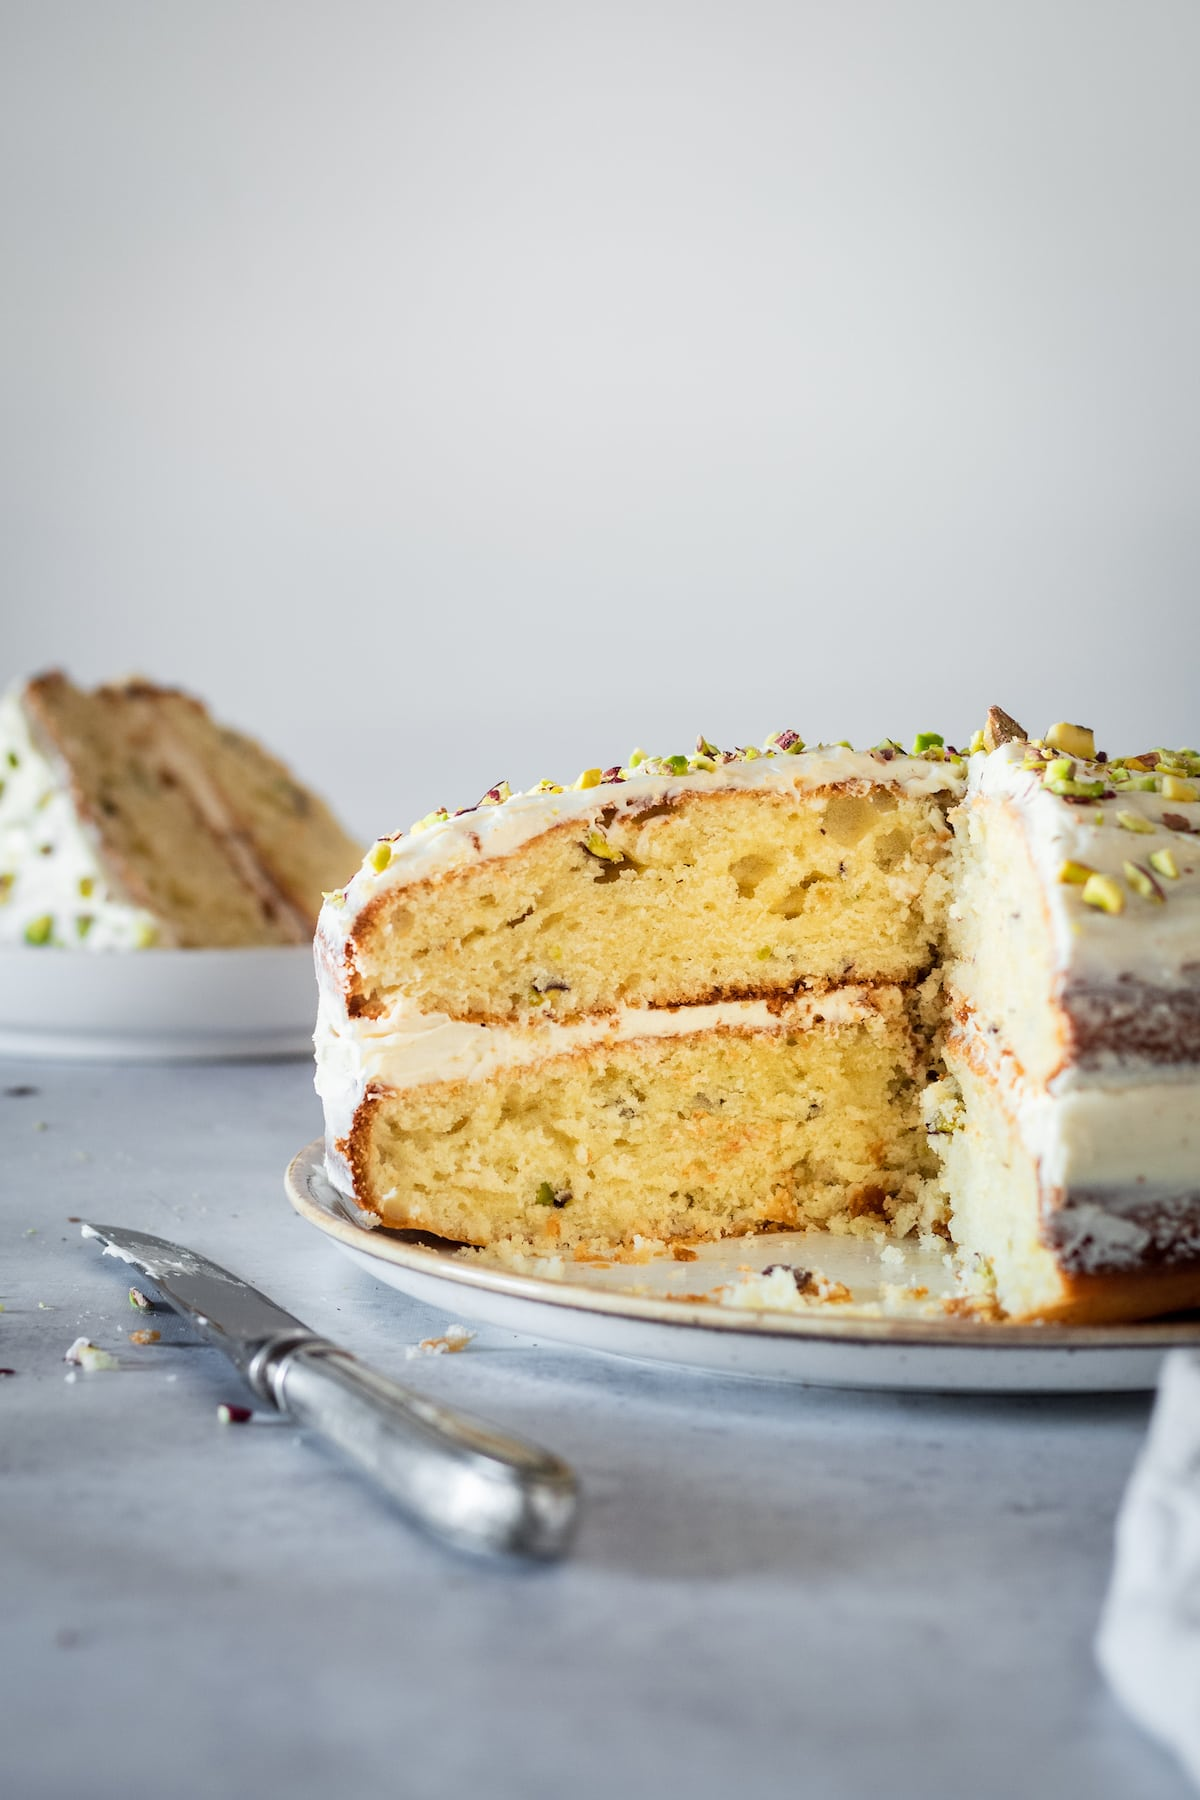 Pistachio Cake with two slices removed